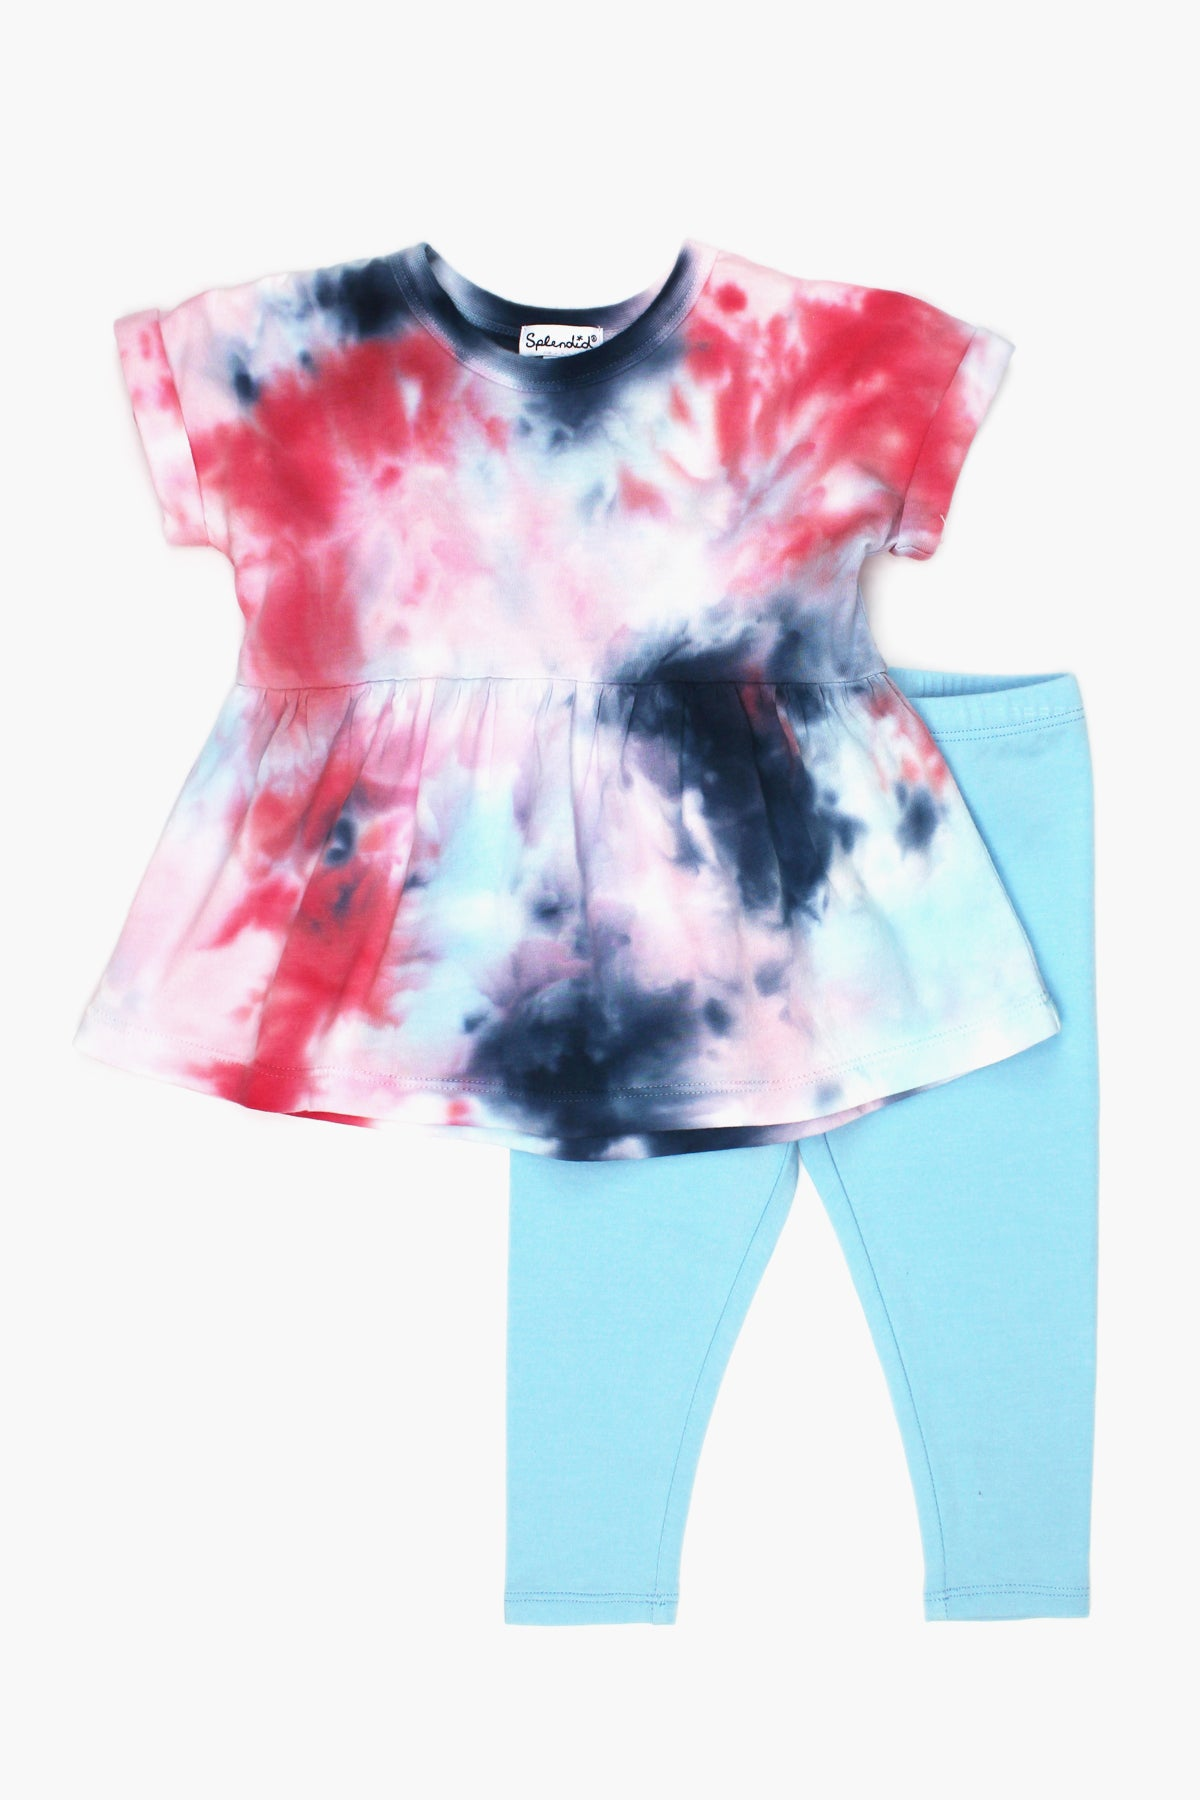 Splendid Tie Dye Baby Girls 2-Piece Set